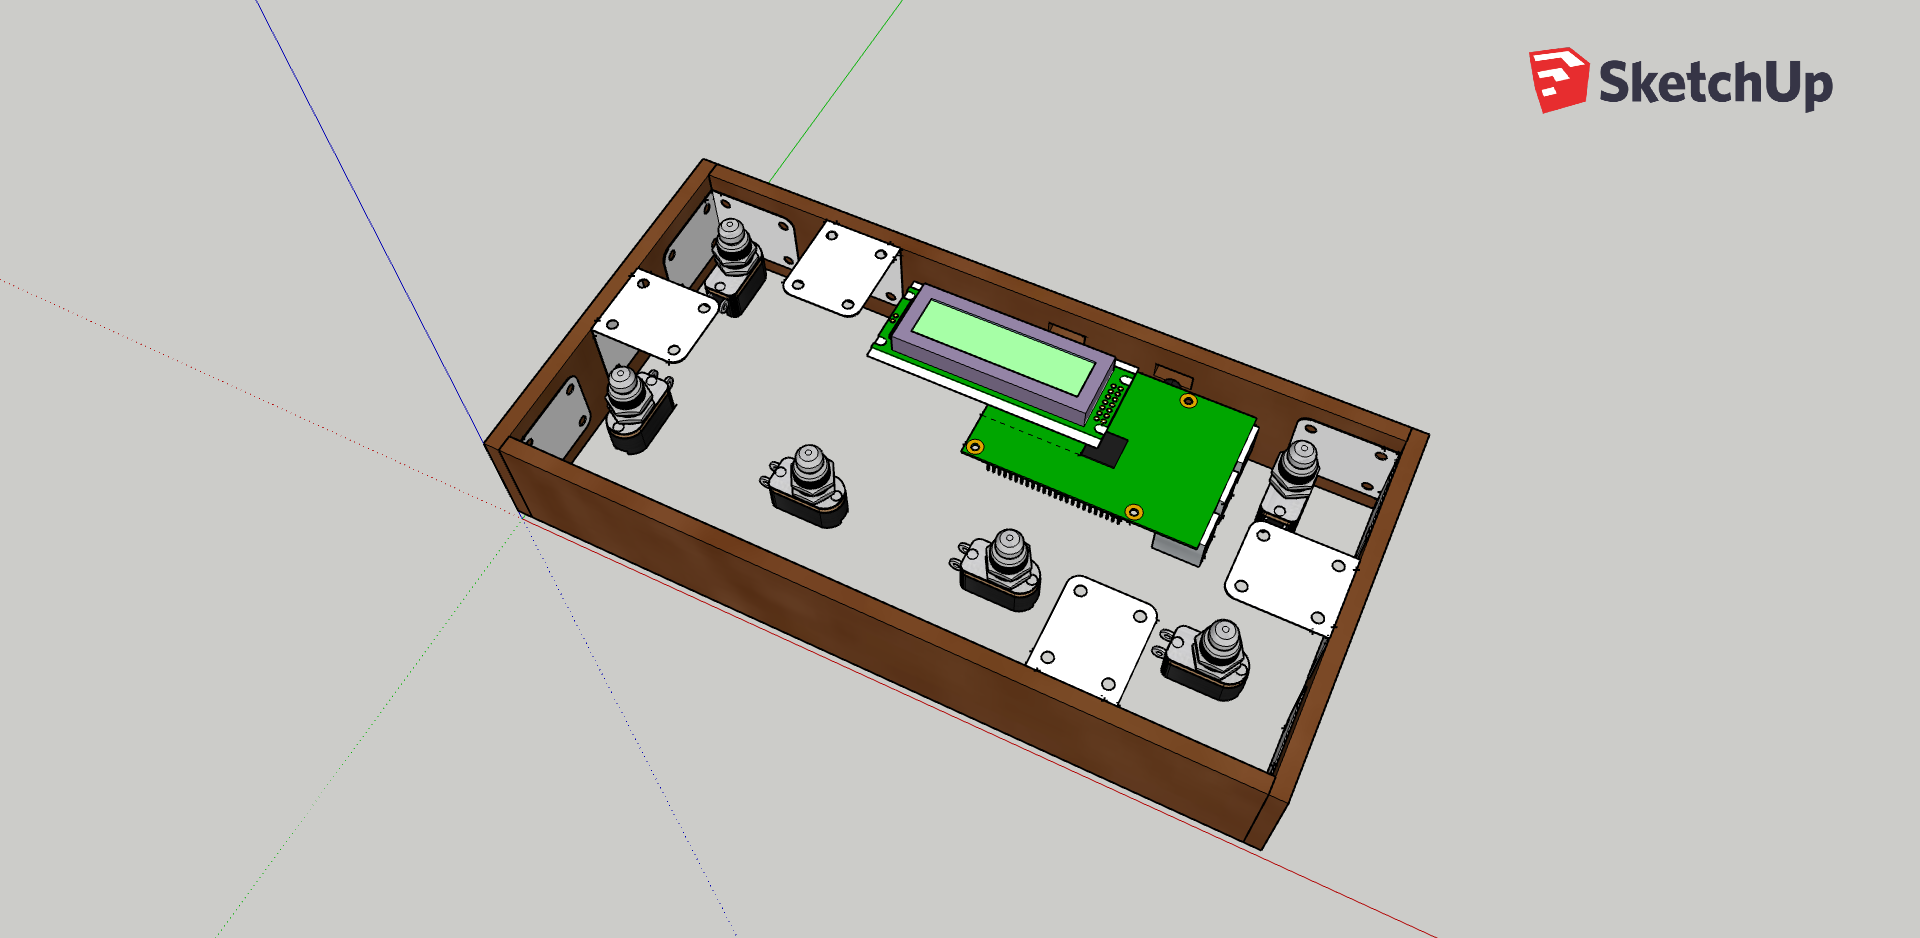 A screenshot of a 3D model of SoundFloored without the lid on. The box is rectangular and has six footswitches, distributed with two on the upper long edge (with a screen between) and four on the lower long edge. Brackets are visible on the inside walls of the box and a Raspberry Pi is mounted on the underside of the screen